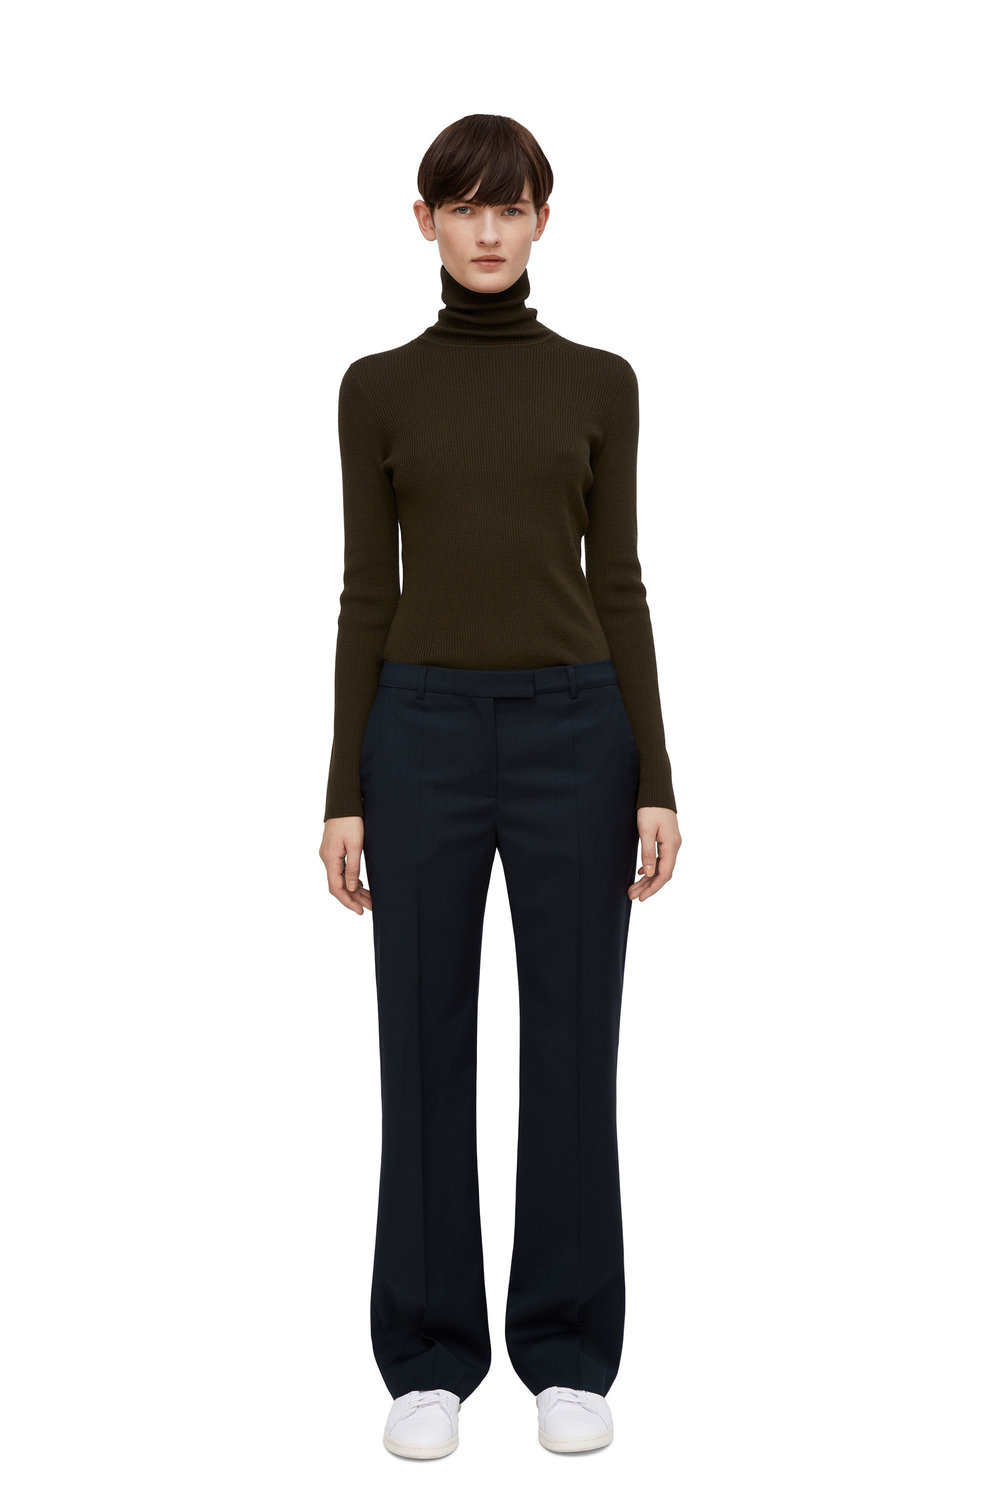 Tailored Wide-Leg Wool Trousers, £79